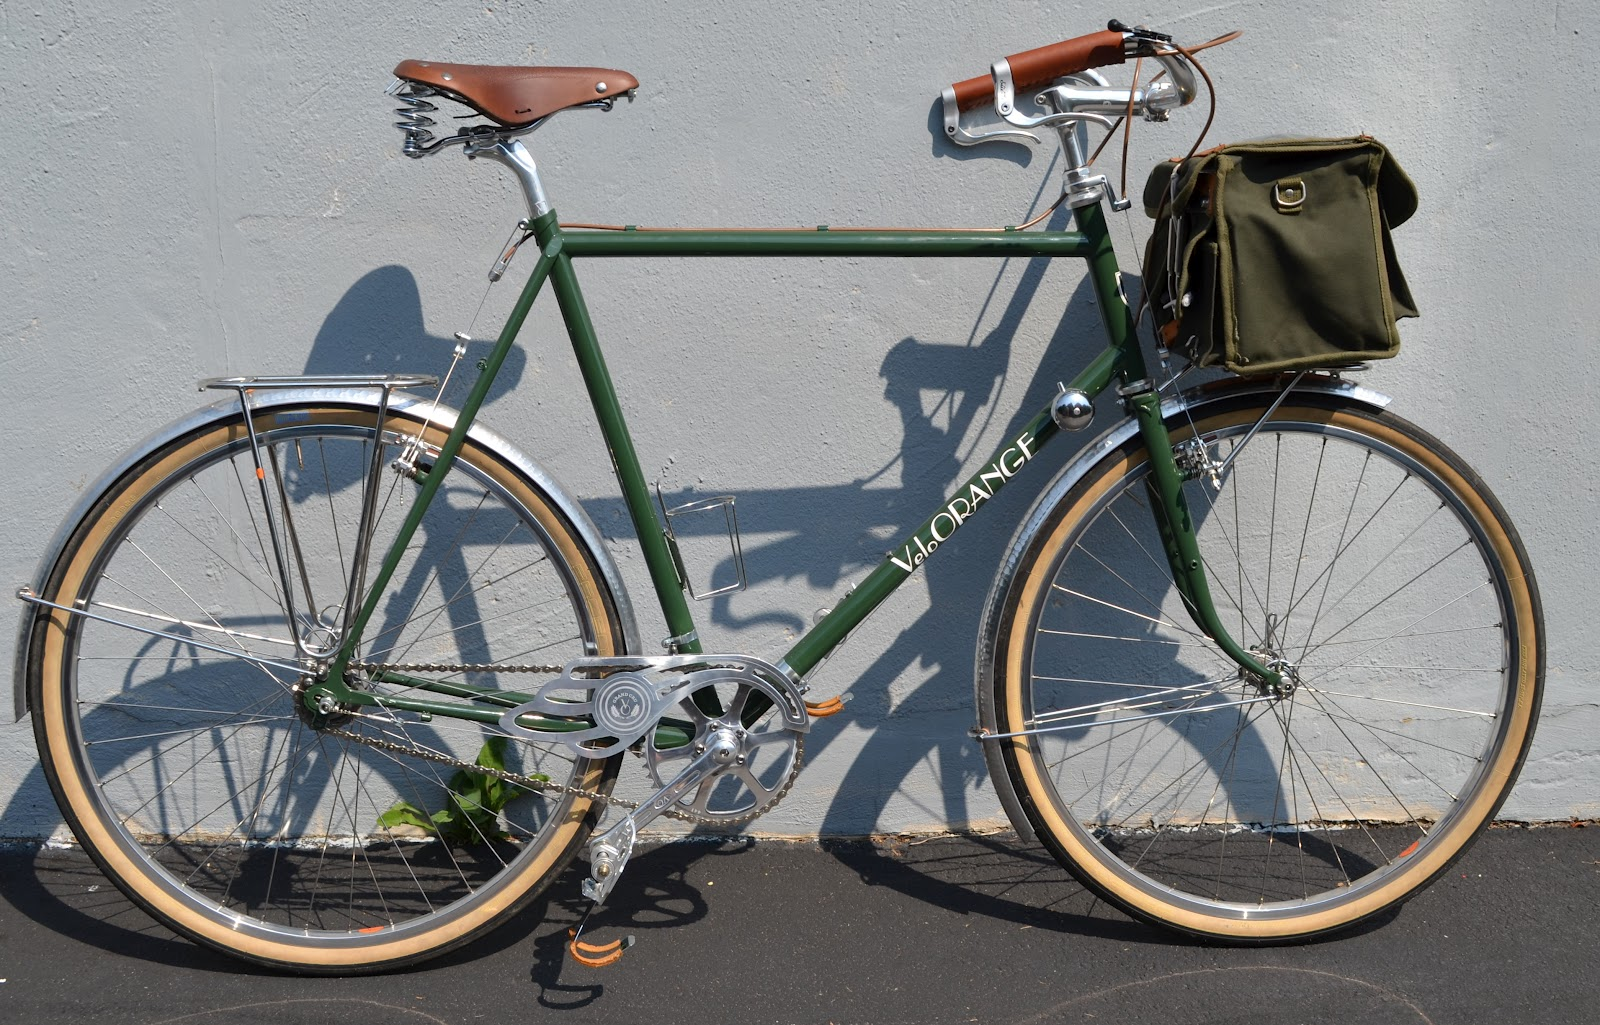 The Velo ORANGE Blog: Observations on a Gentleman's Bike